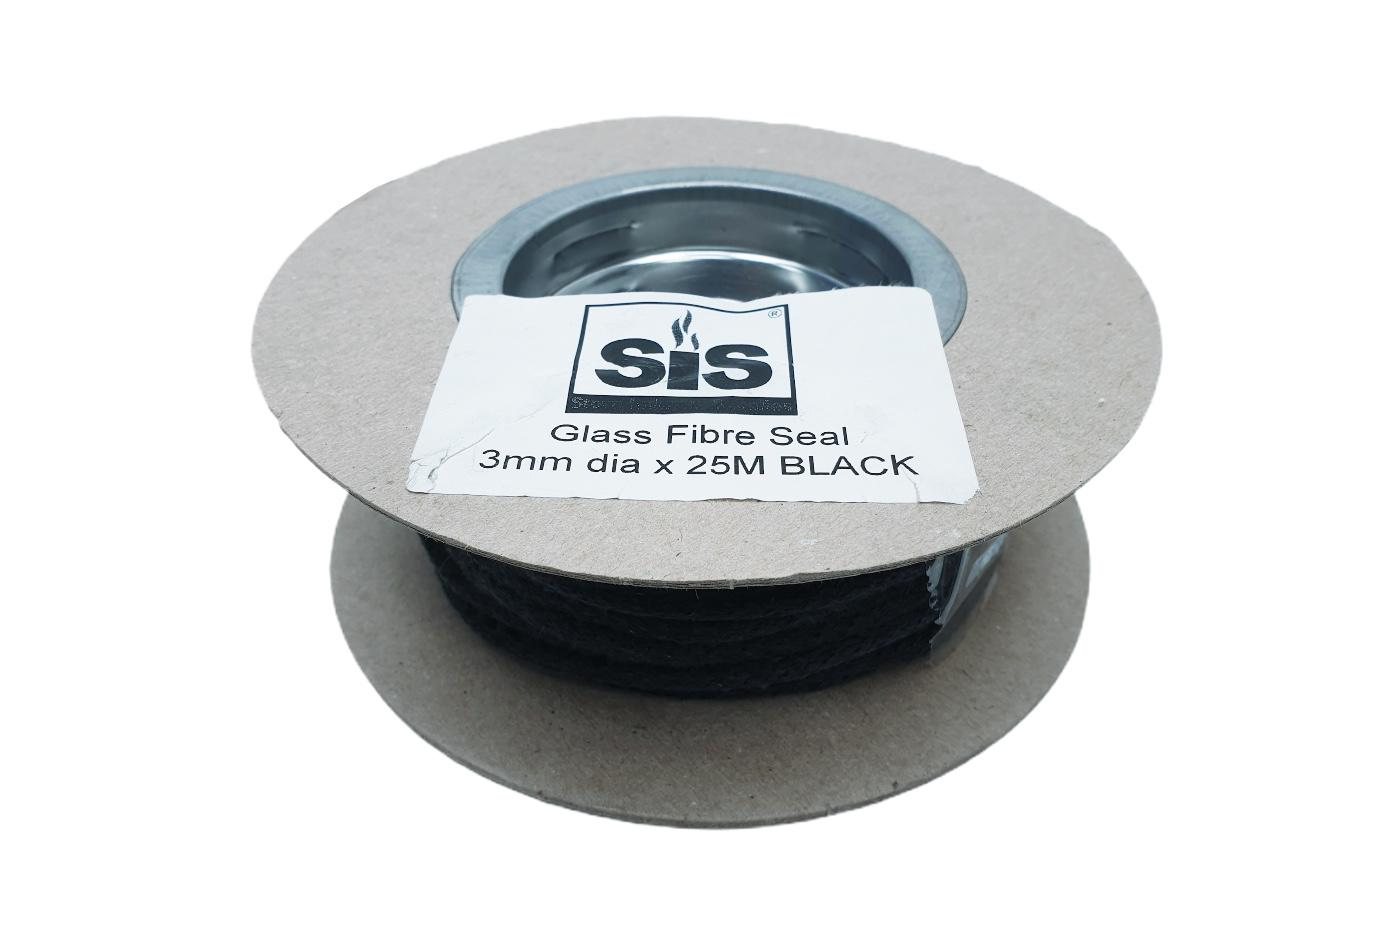 A 25 metre reel of Black 3mm standard stove rope - product code R325b